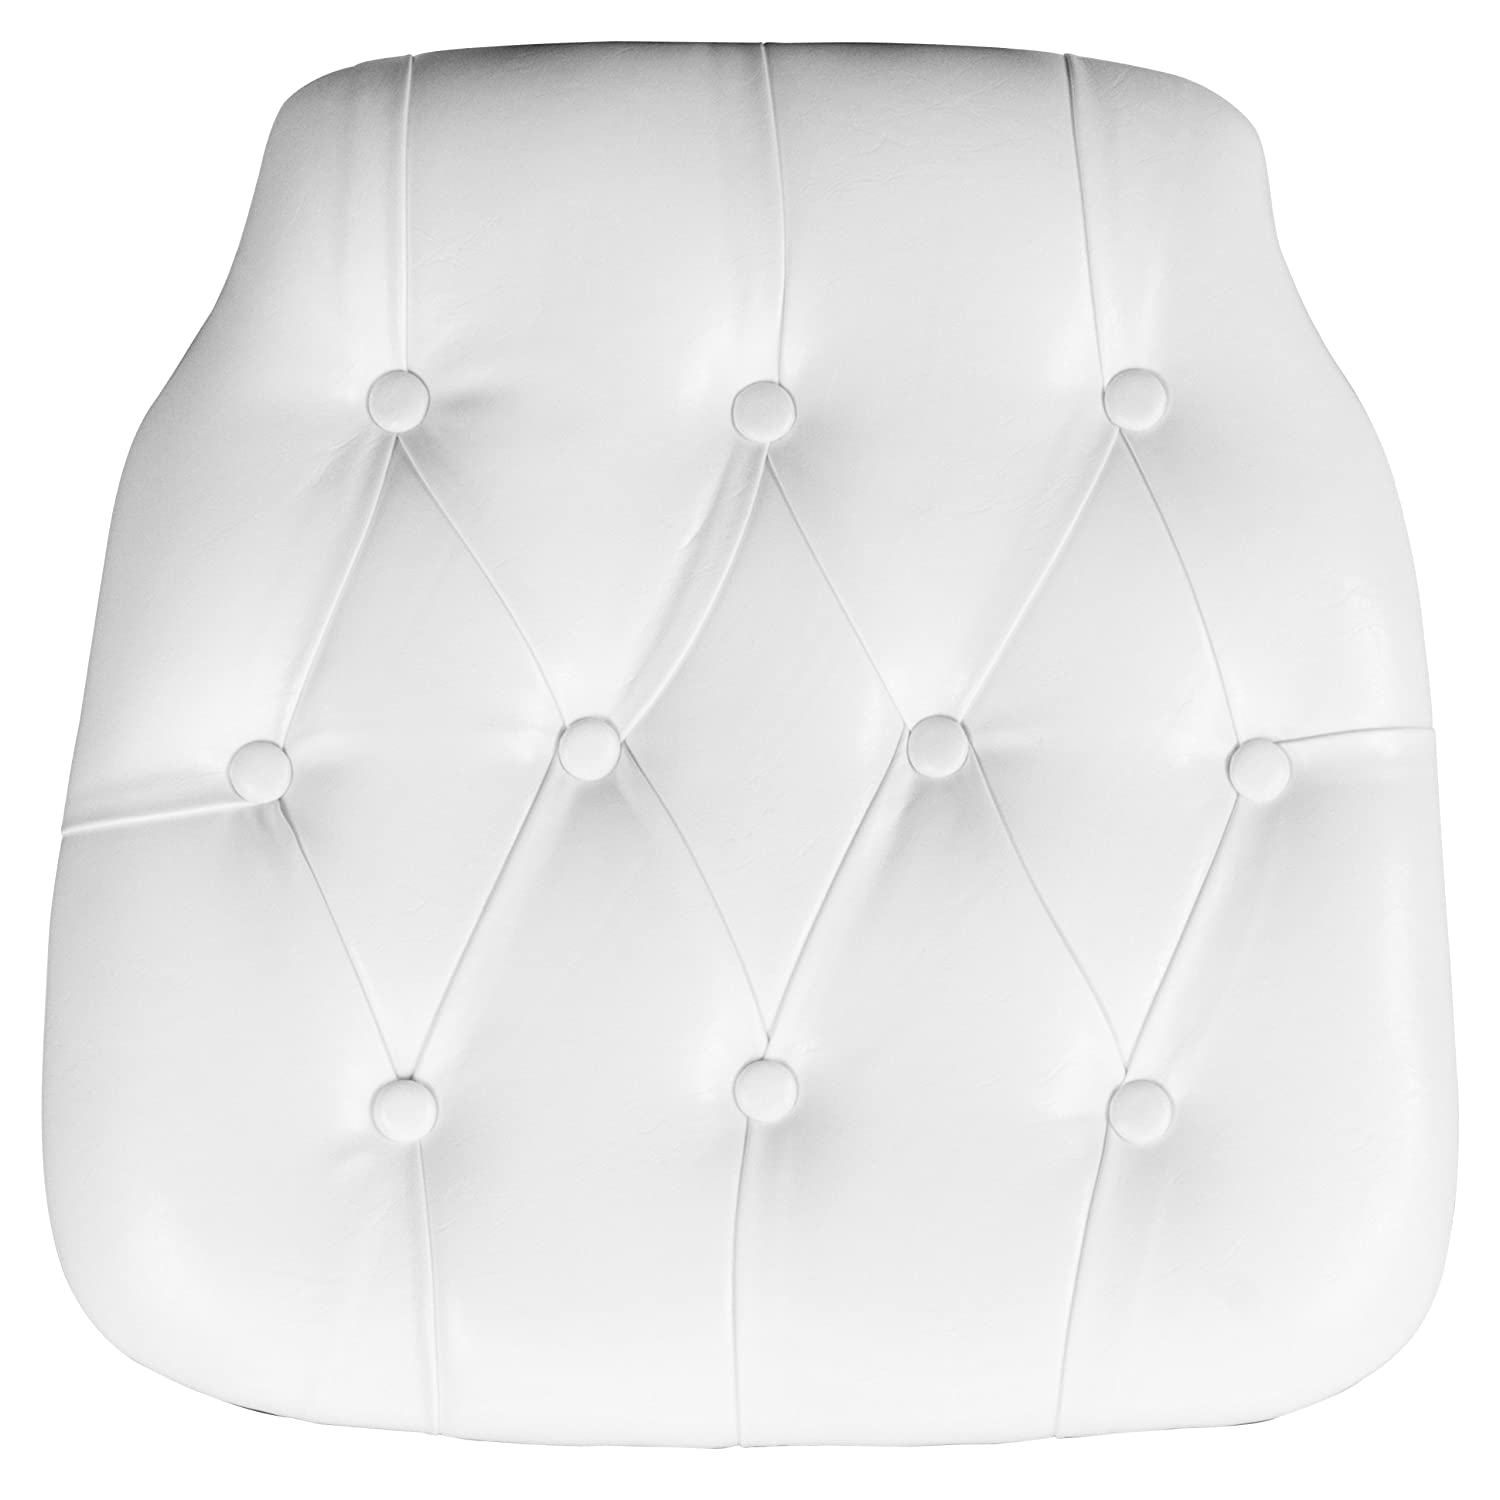 Exceptionnel Amazon.com: Flash Furniture Hard White Tufted Vinyl Chiavari Chair Cushion:  Kitchen U0026 Dining